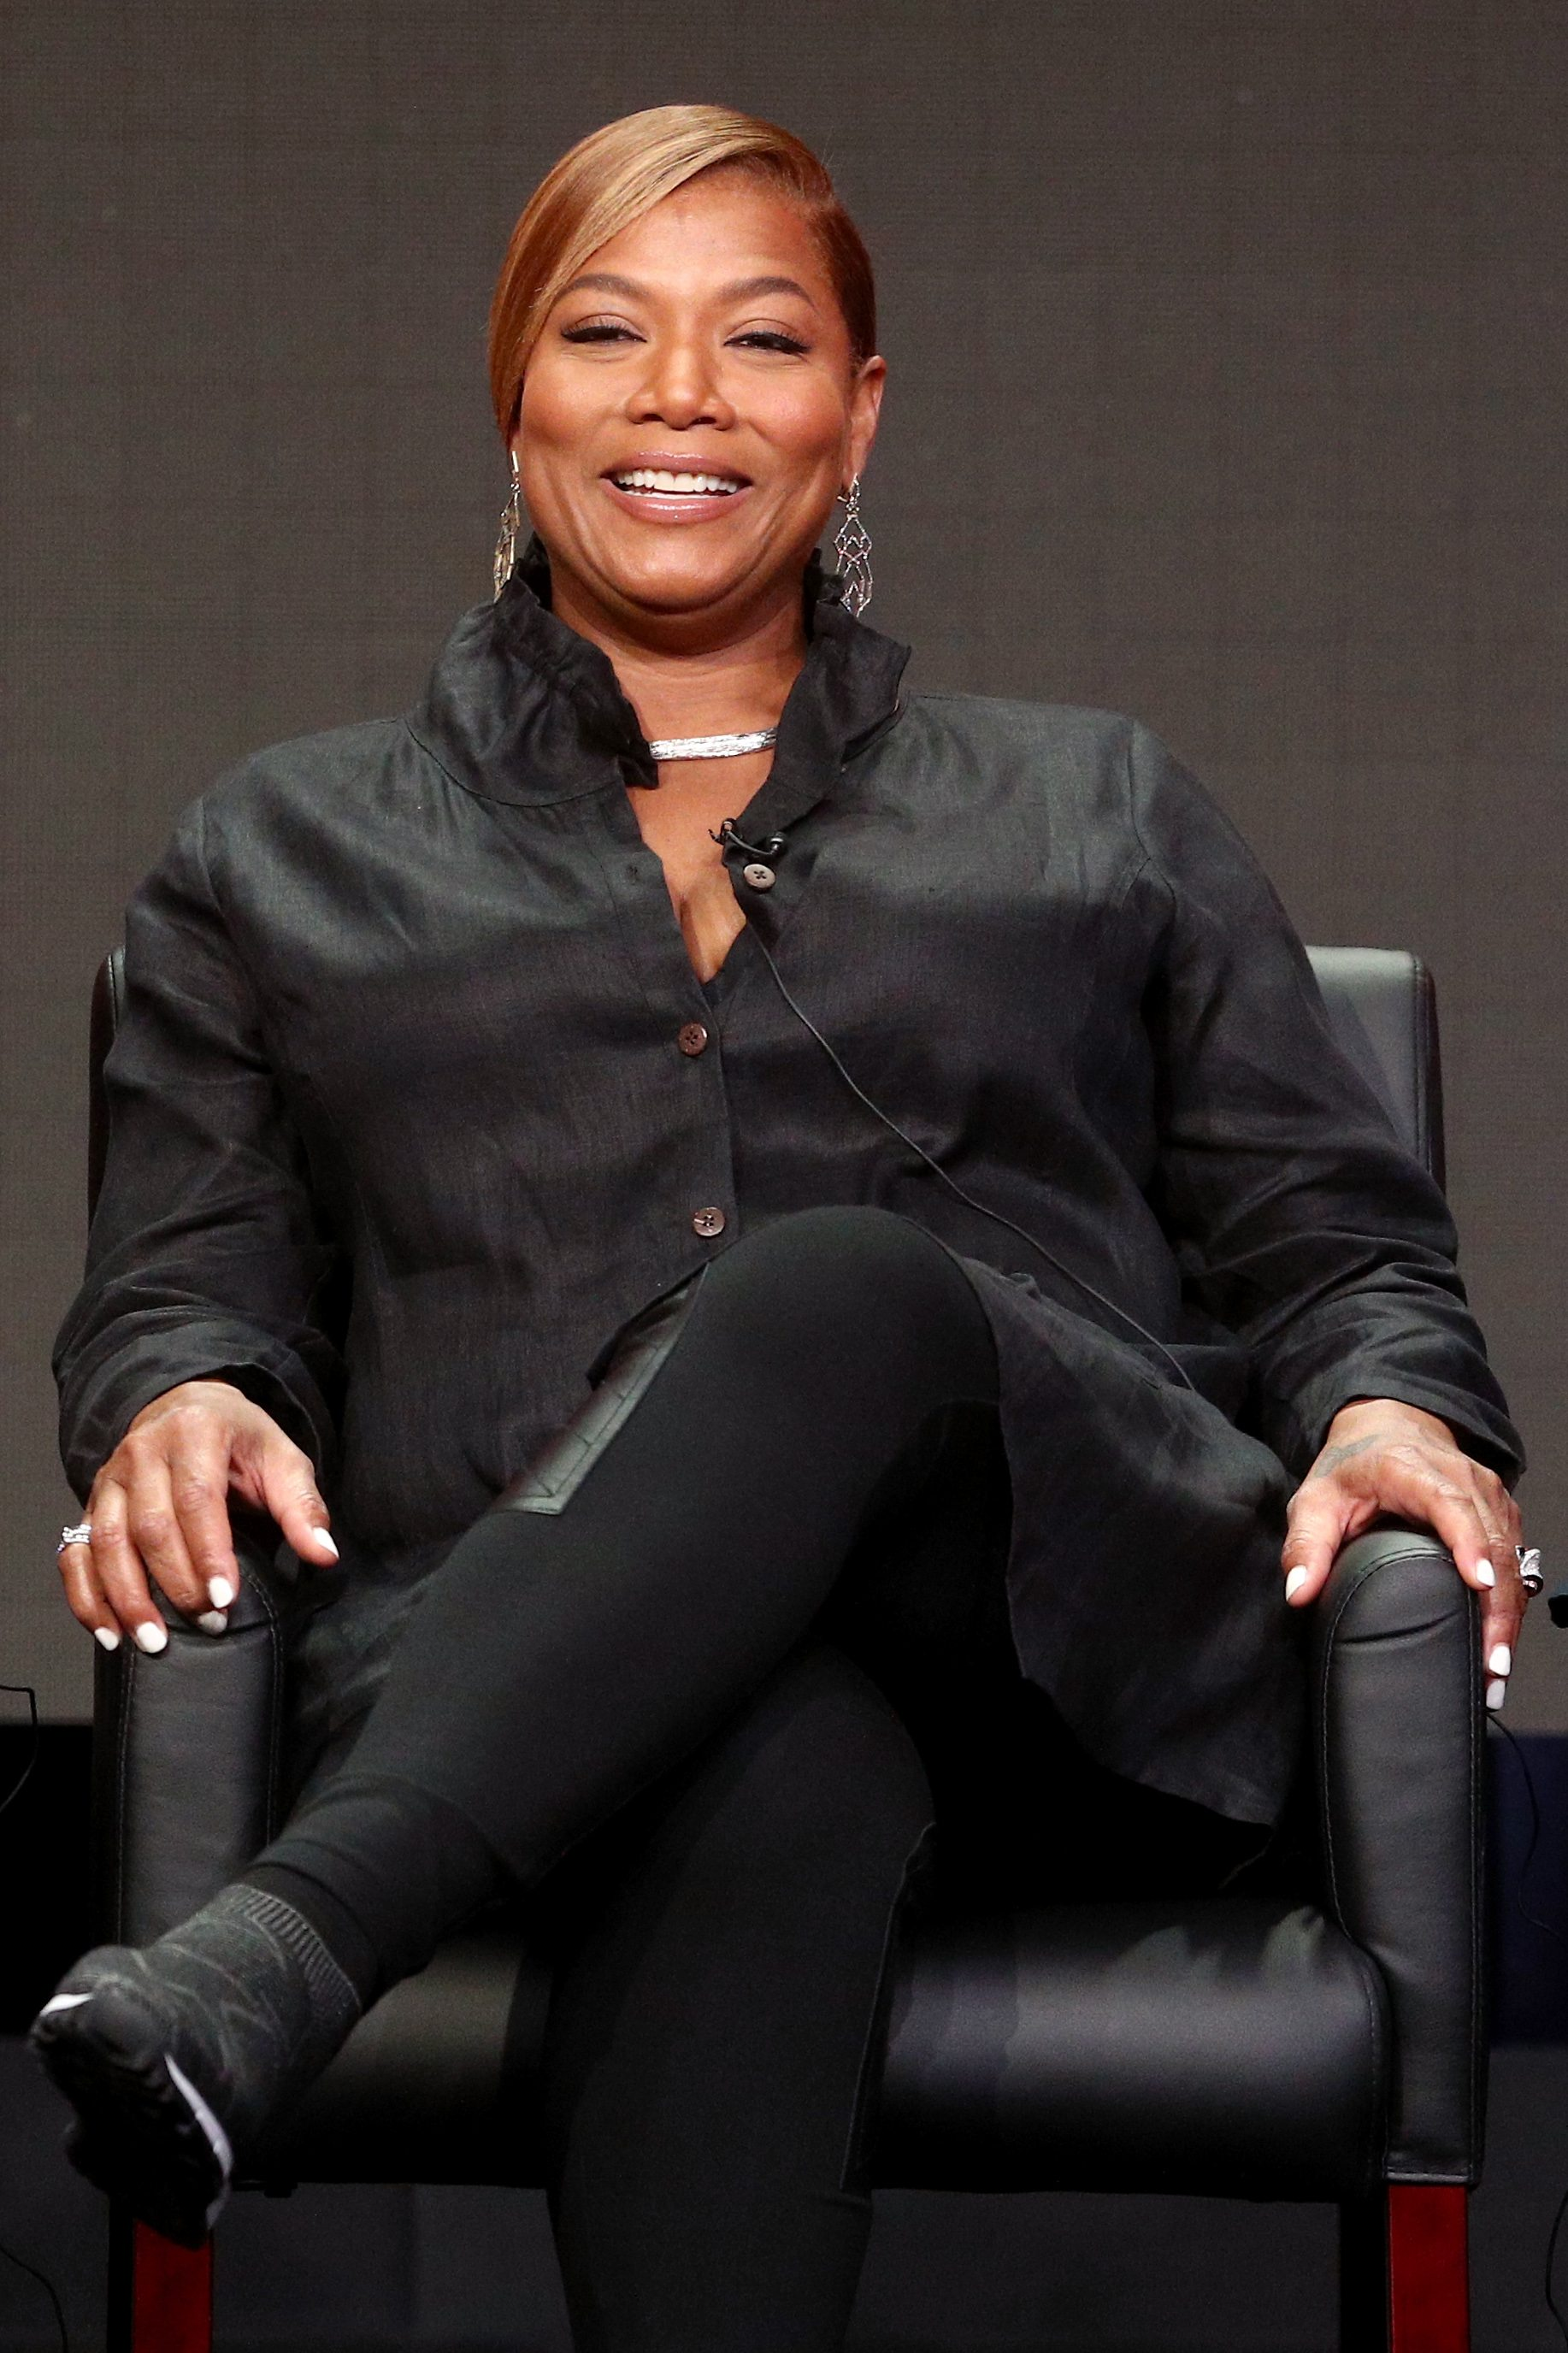 Queen Latifah to Invest in $14 Million Affordable Housing Project in Her Hometown Of Newark